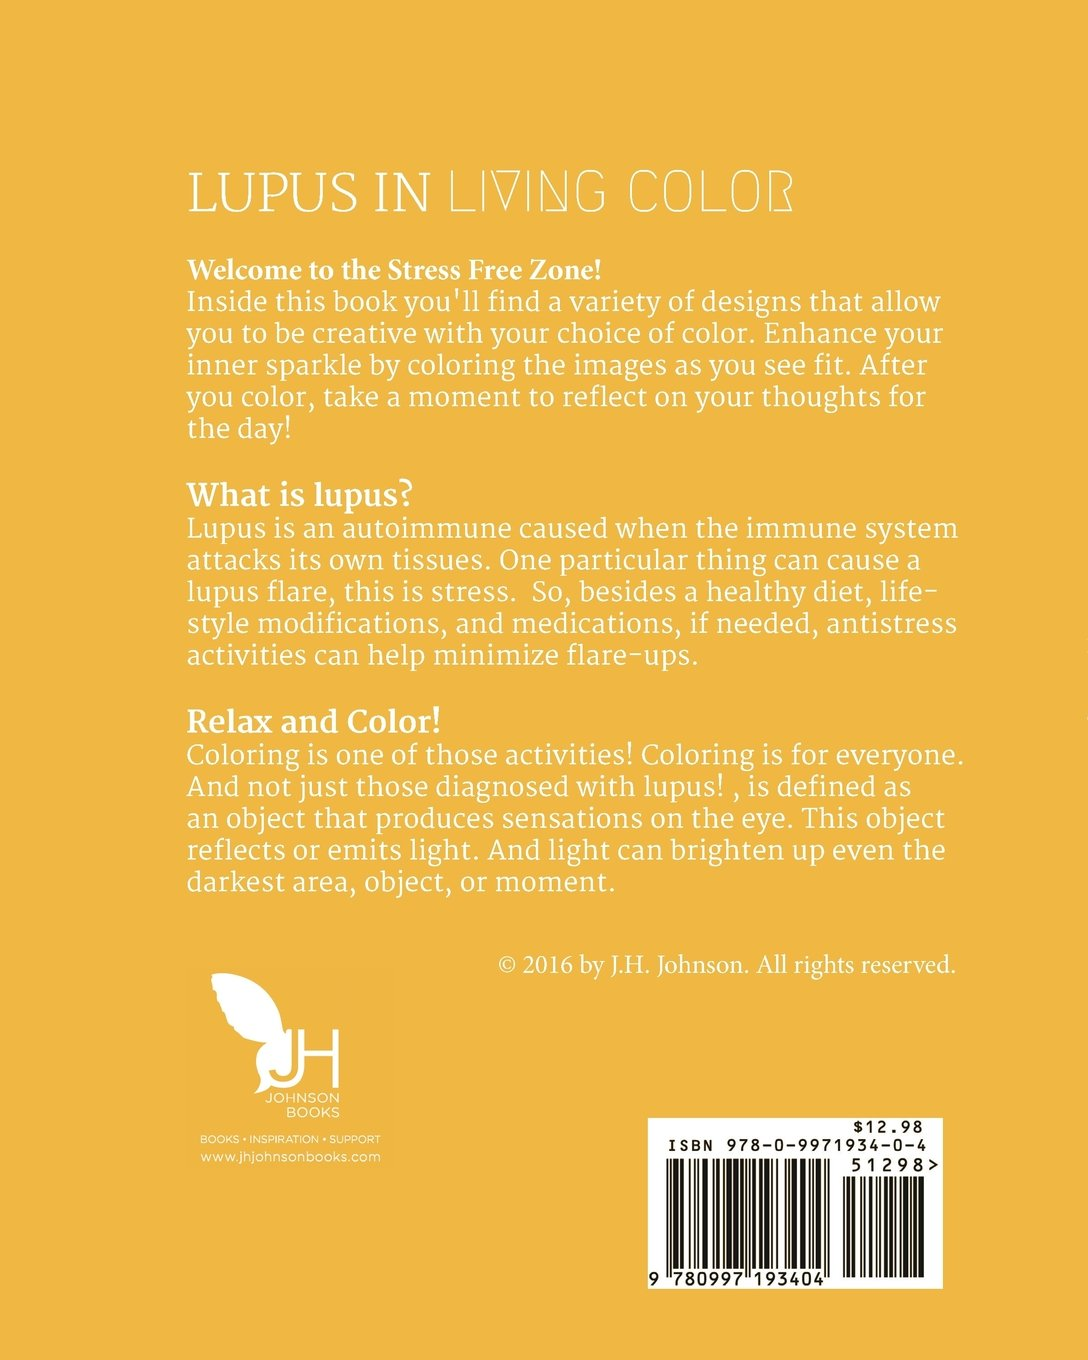 Lupus in Living Color: An Antistress Activity Coloring Book: J.H. ...